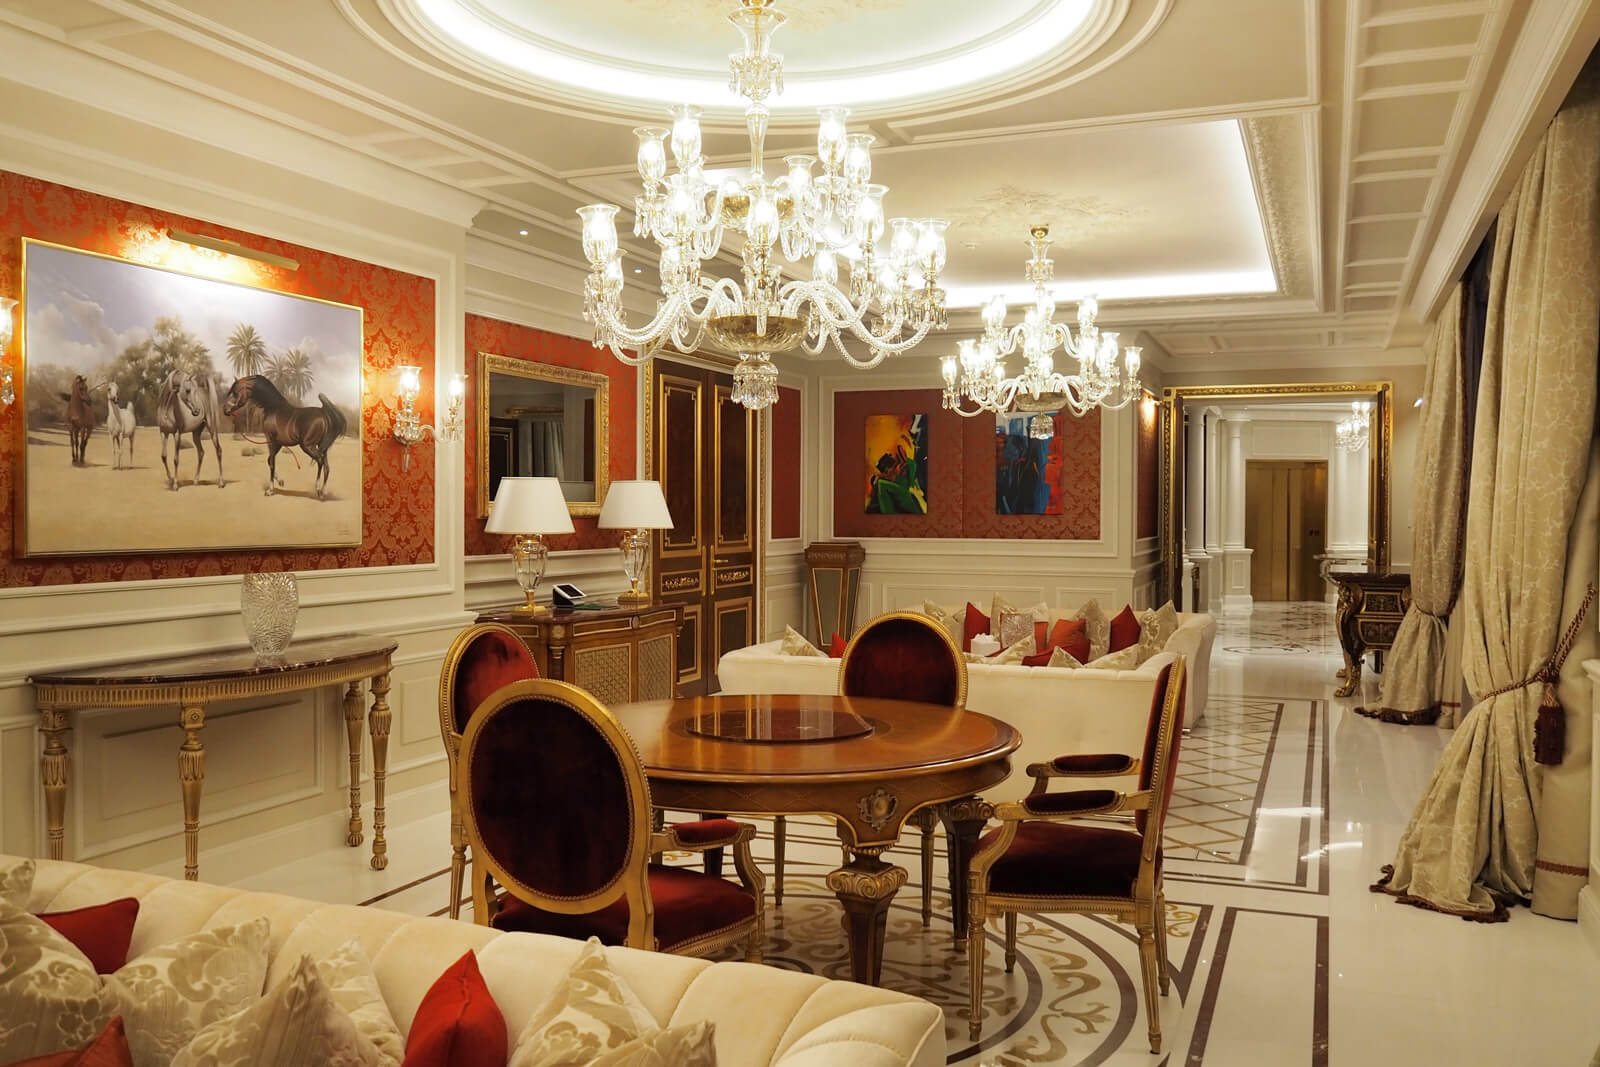 Royal Residence at Hotel Atlantis by Giardino in Zürich, Switzerland